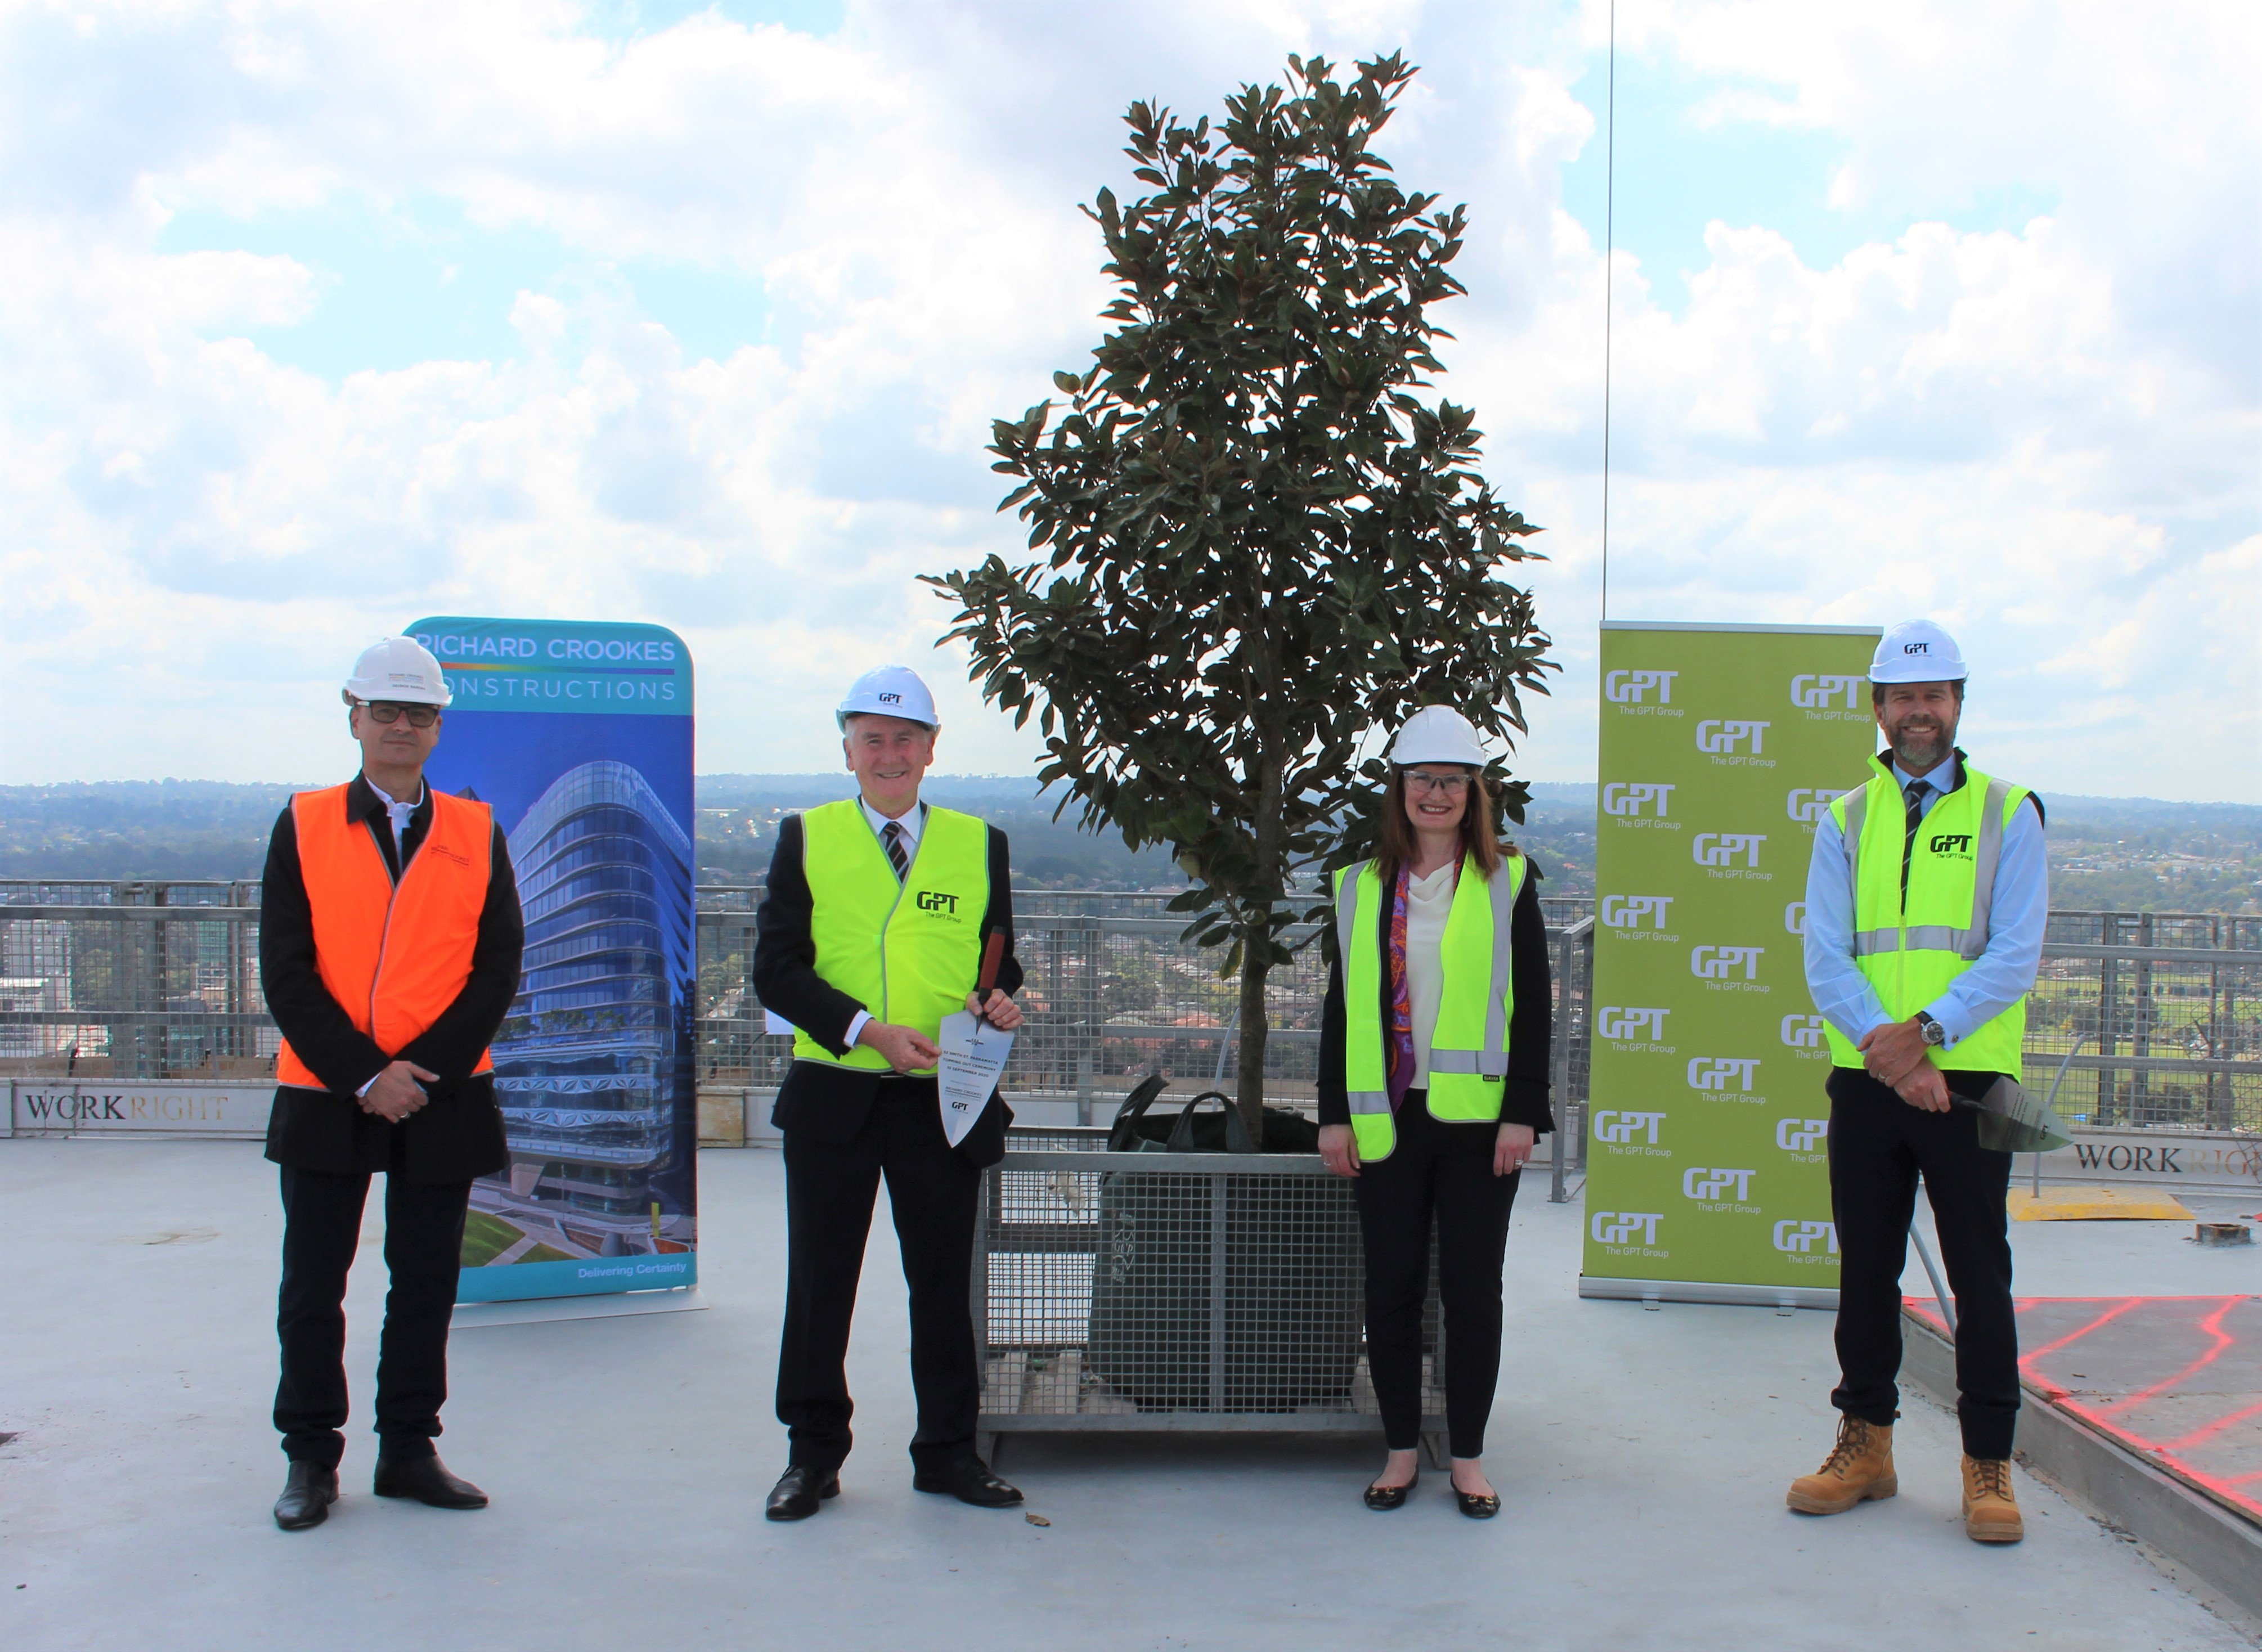 City of Parramatta Council Lord Mayor Cr Bob Dwyer (second from left) with Richard Crookes Constructions CEO George Bardas (far left), QBE Insurance's Fiona Hayes-St Clair (second from right) and GPT's Matthew Faddy (far right) at the 32 Smith St Topping Out ceremony.